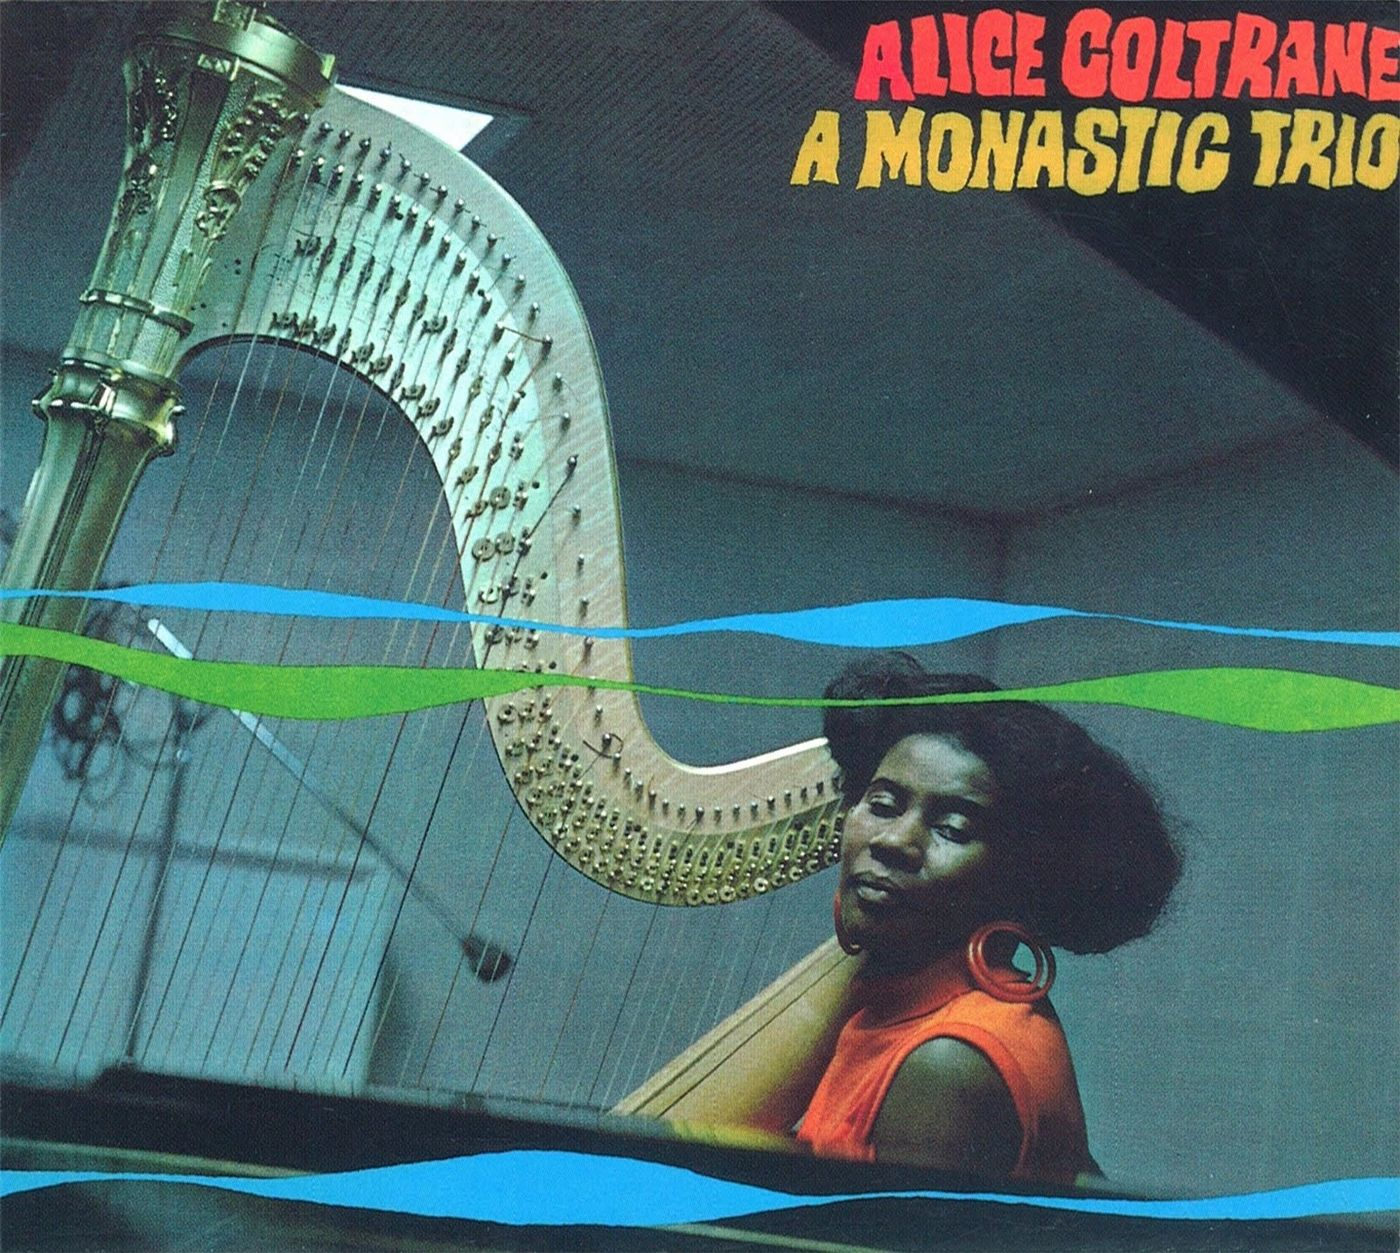 700836 Superior Viaduct  Alice Coltrane A Monastic Trio (LP)